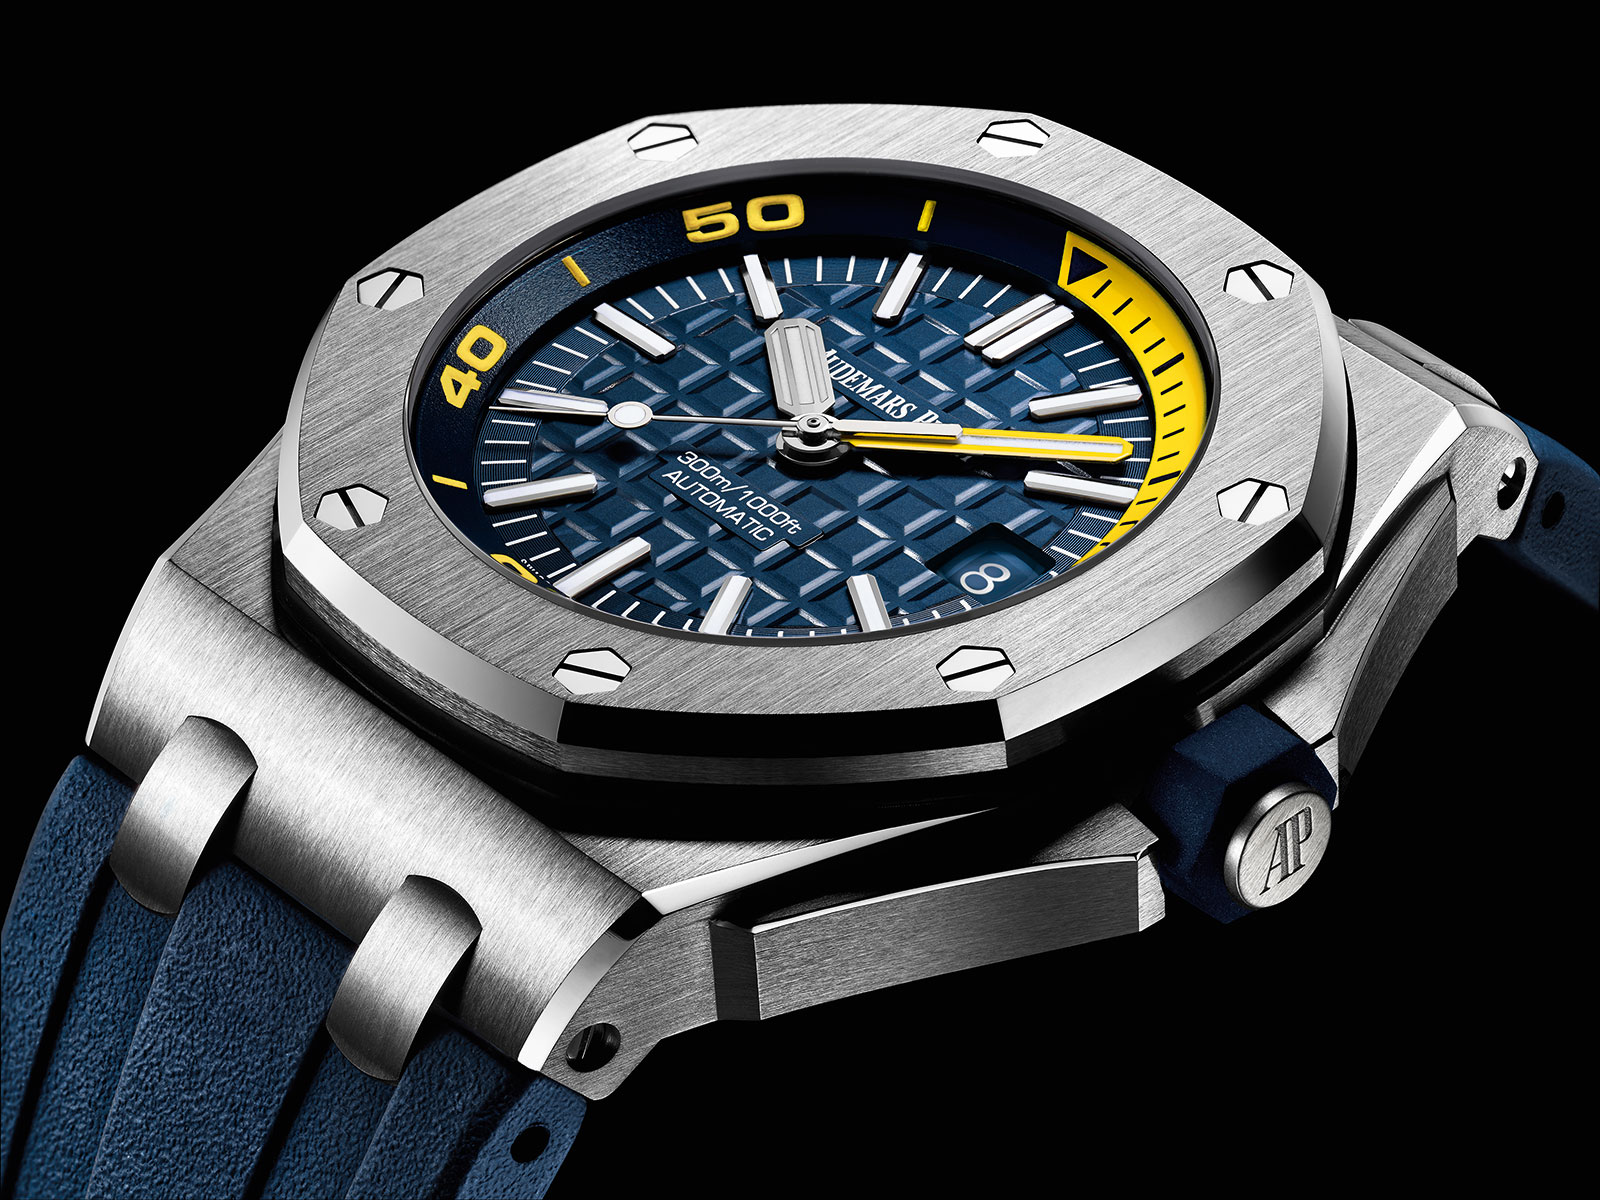 Royal Oak Offshore Diver Self-winding copy watches